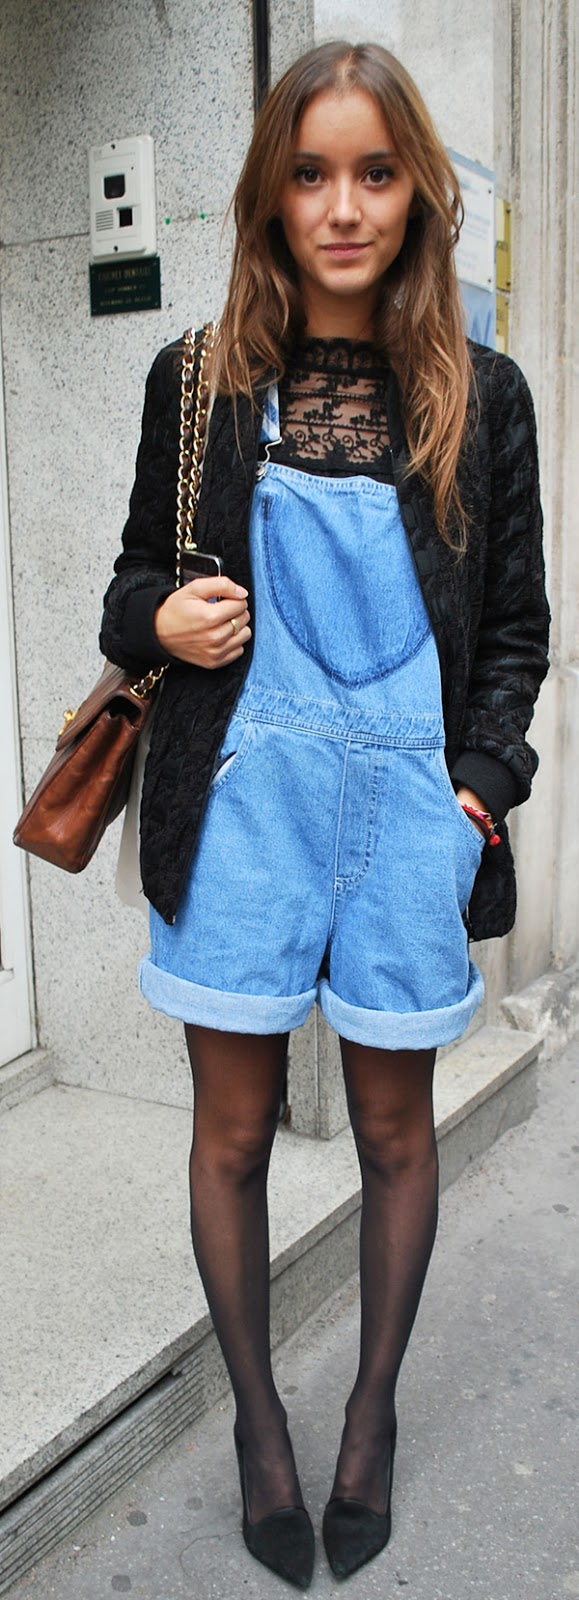 overalls outfit idea